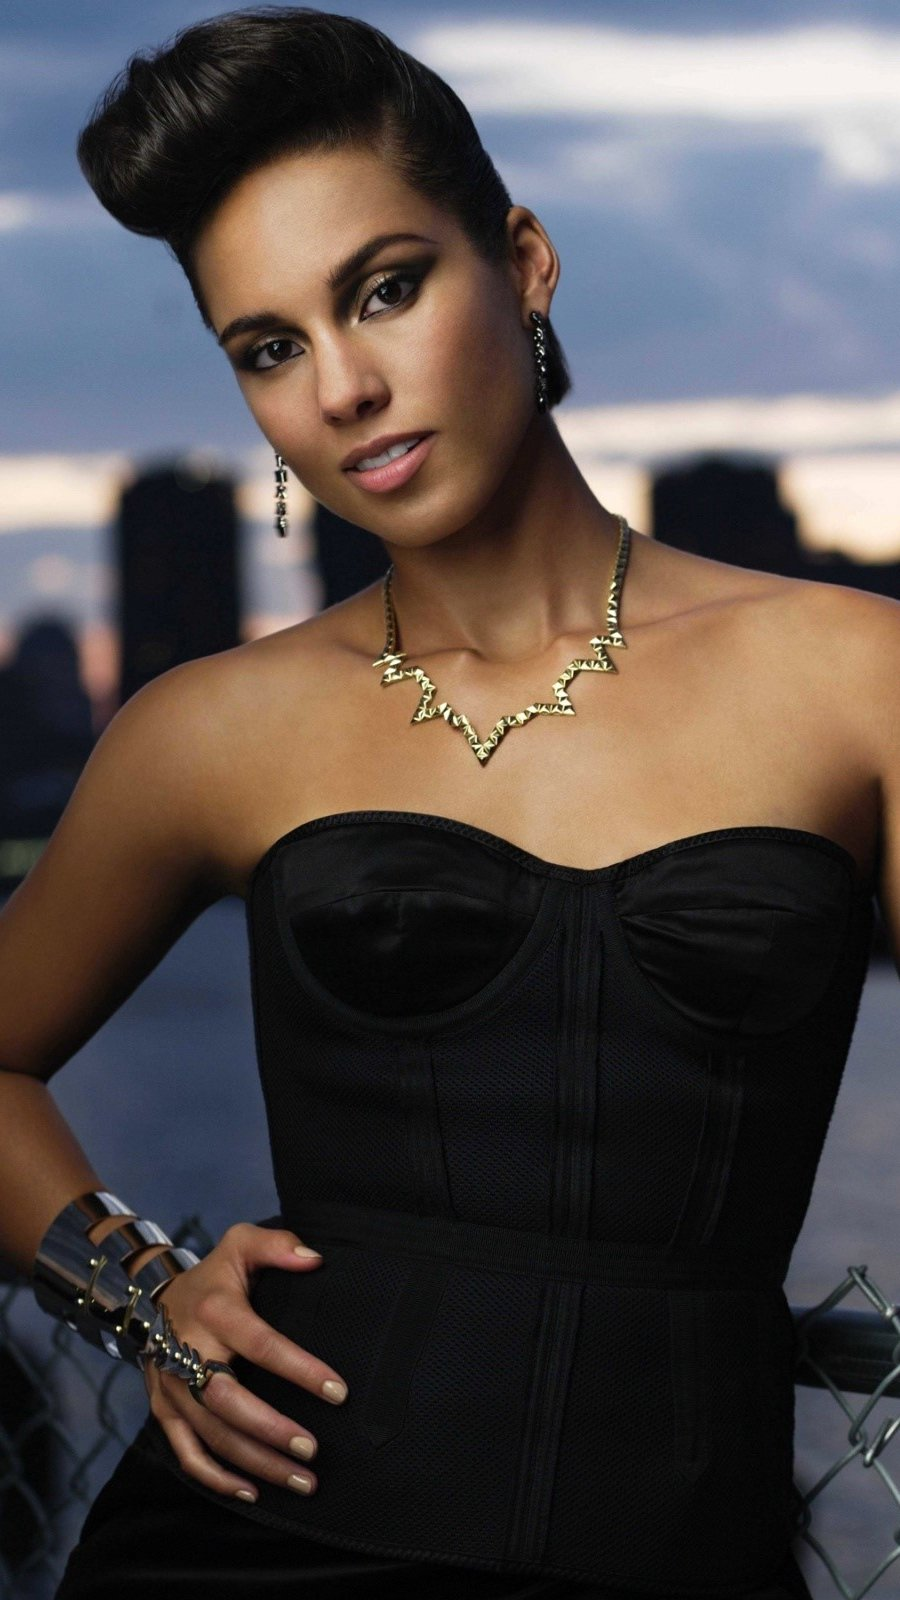 Wallpaper Alicia Keys in New York Vertical